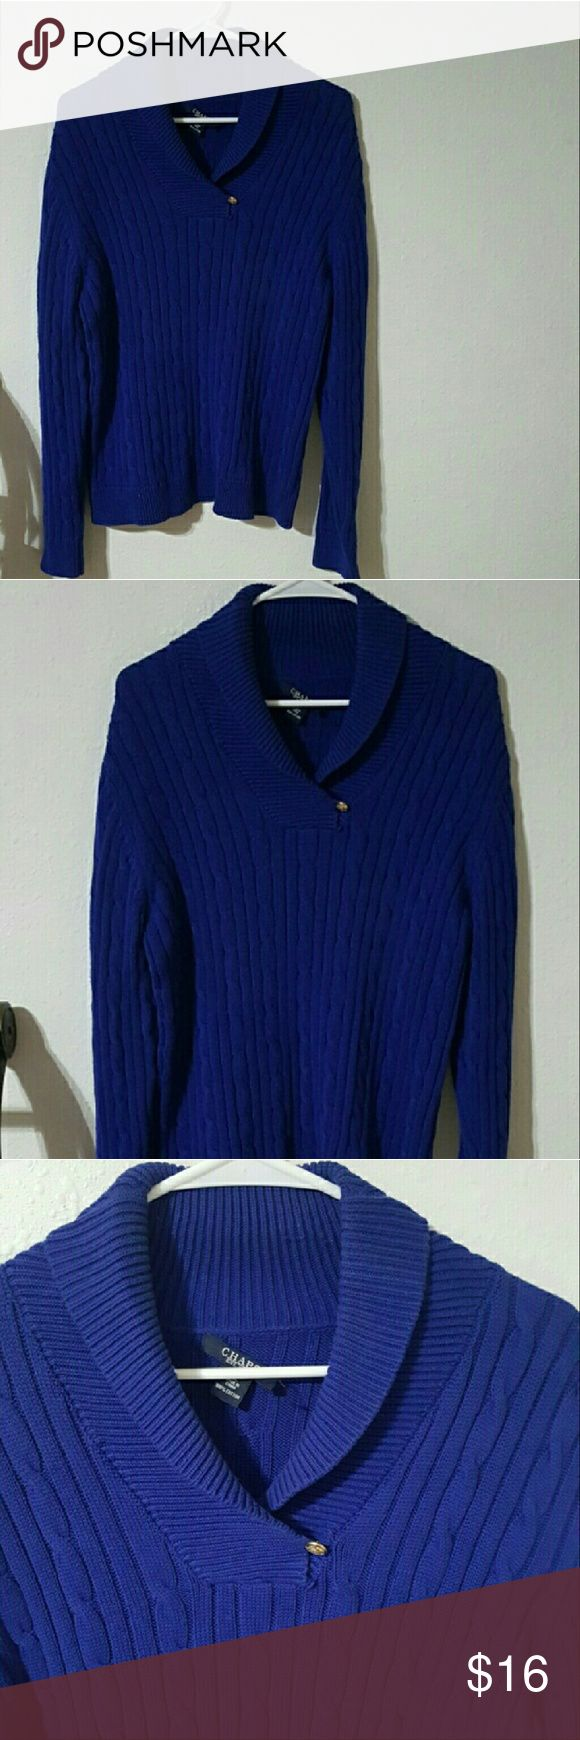 *LIKE NEW* CHAPS Royal Blue Sweater Women's Sz XL *LIKE NEW CONDITION*  CHAPS Royal Blue Sweater   Women's Size XL Chaps Sweaters